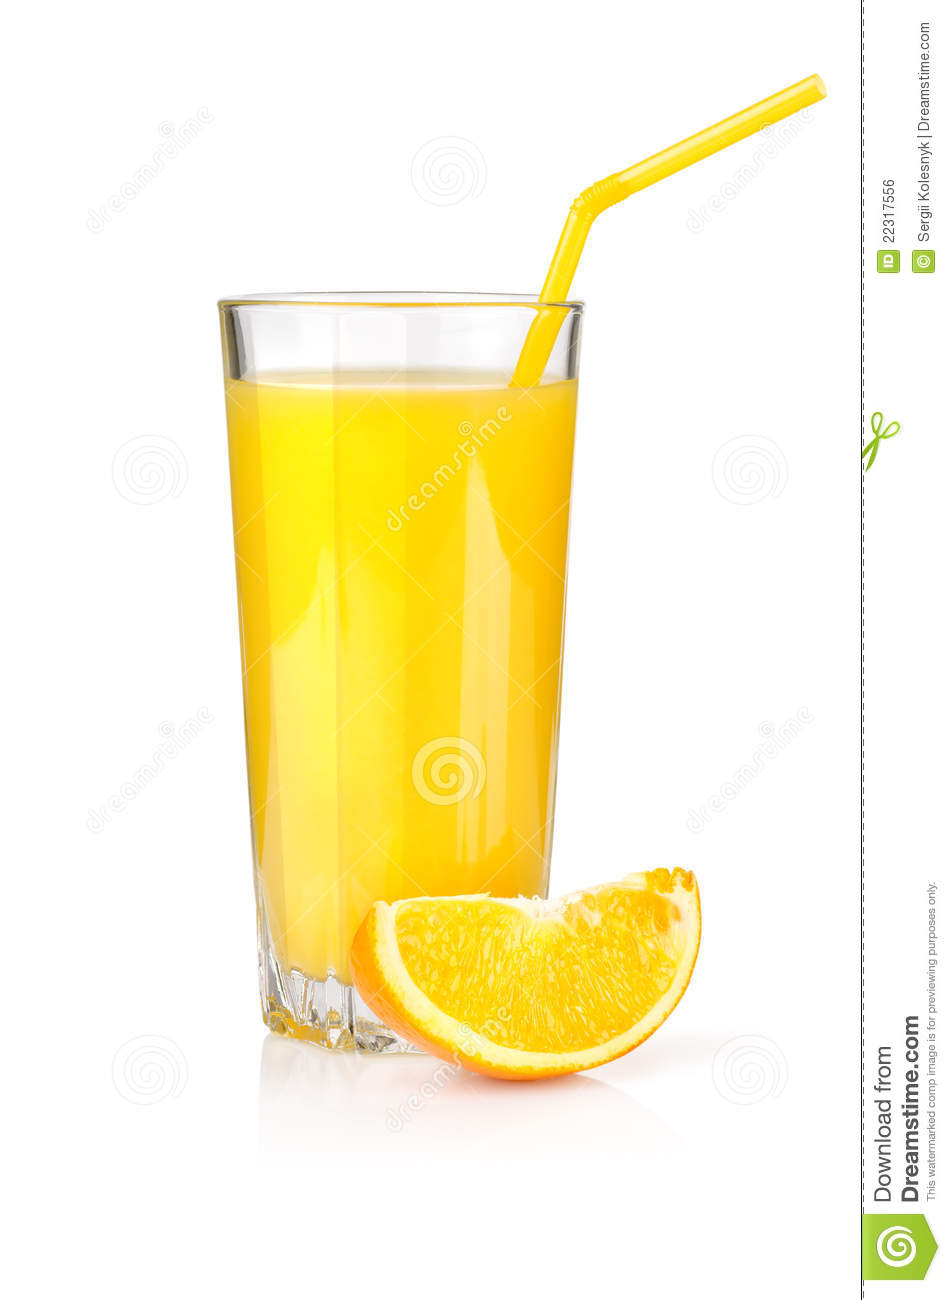 Cup Of Juice Clipart Orange juice in a glass on a